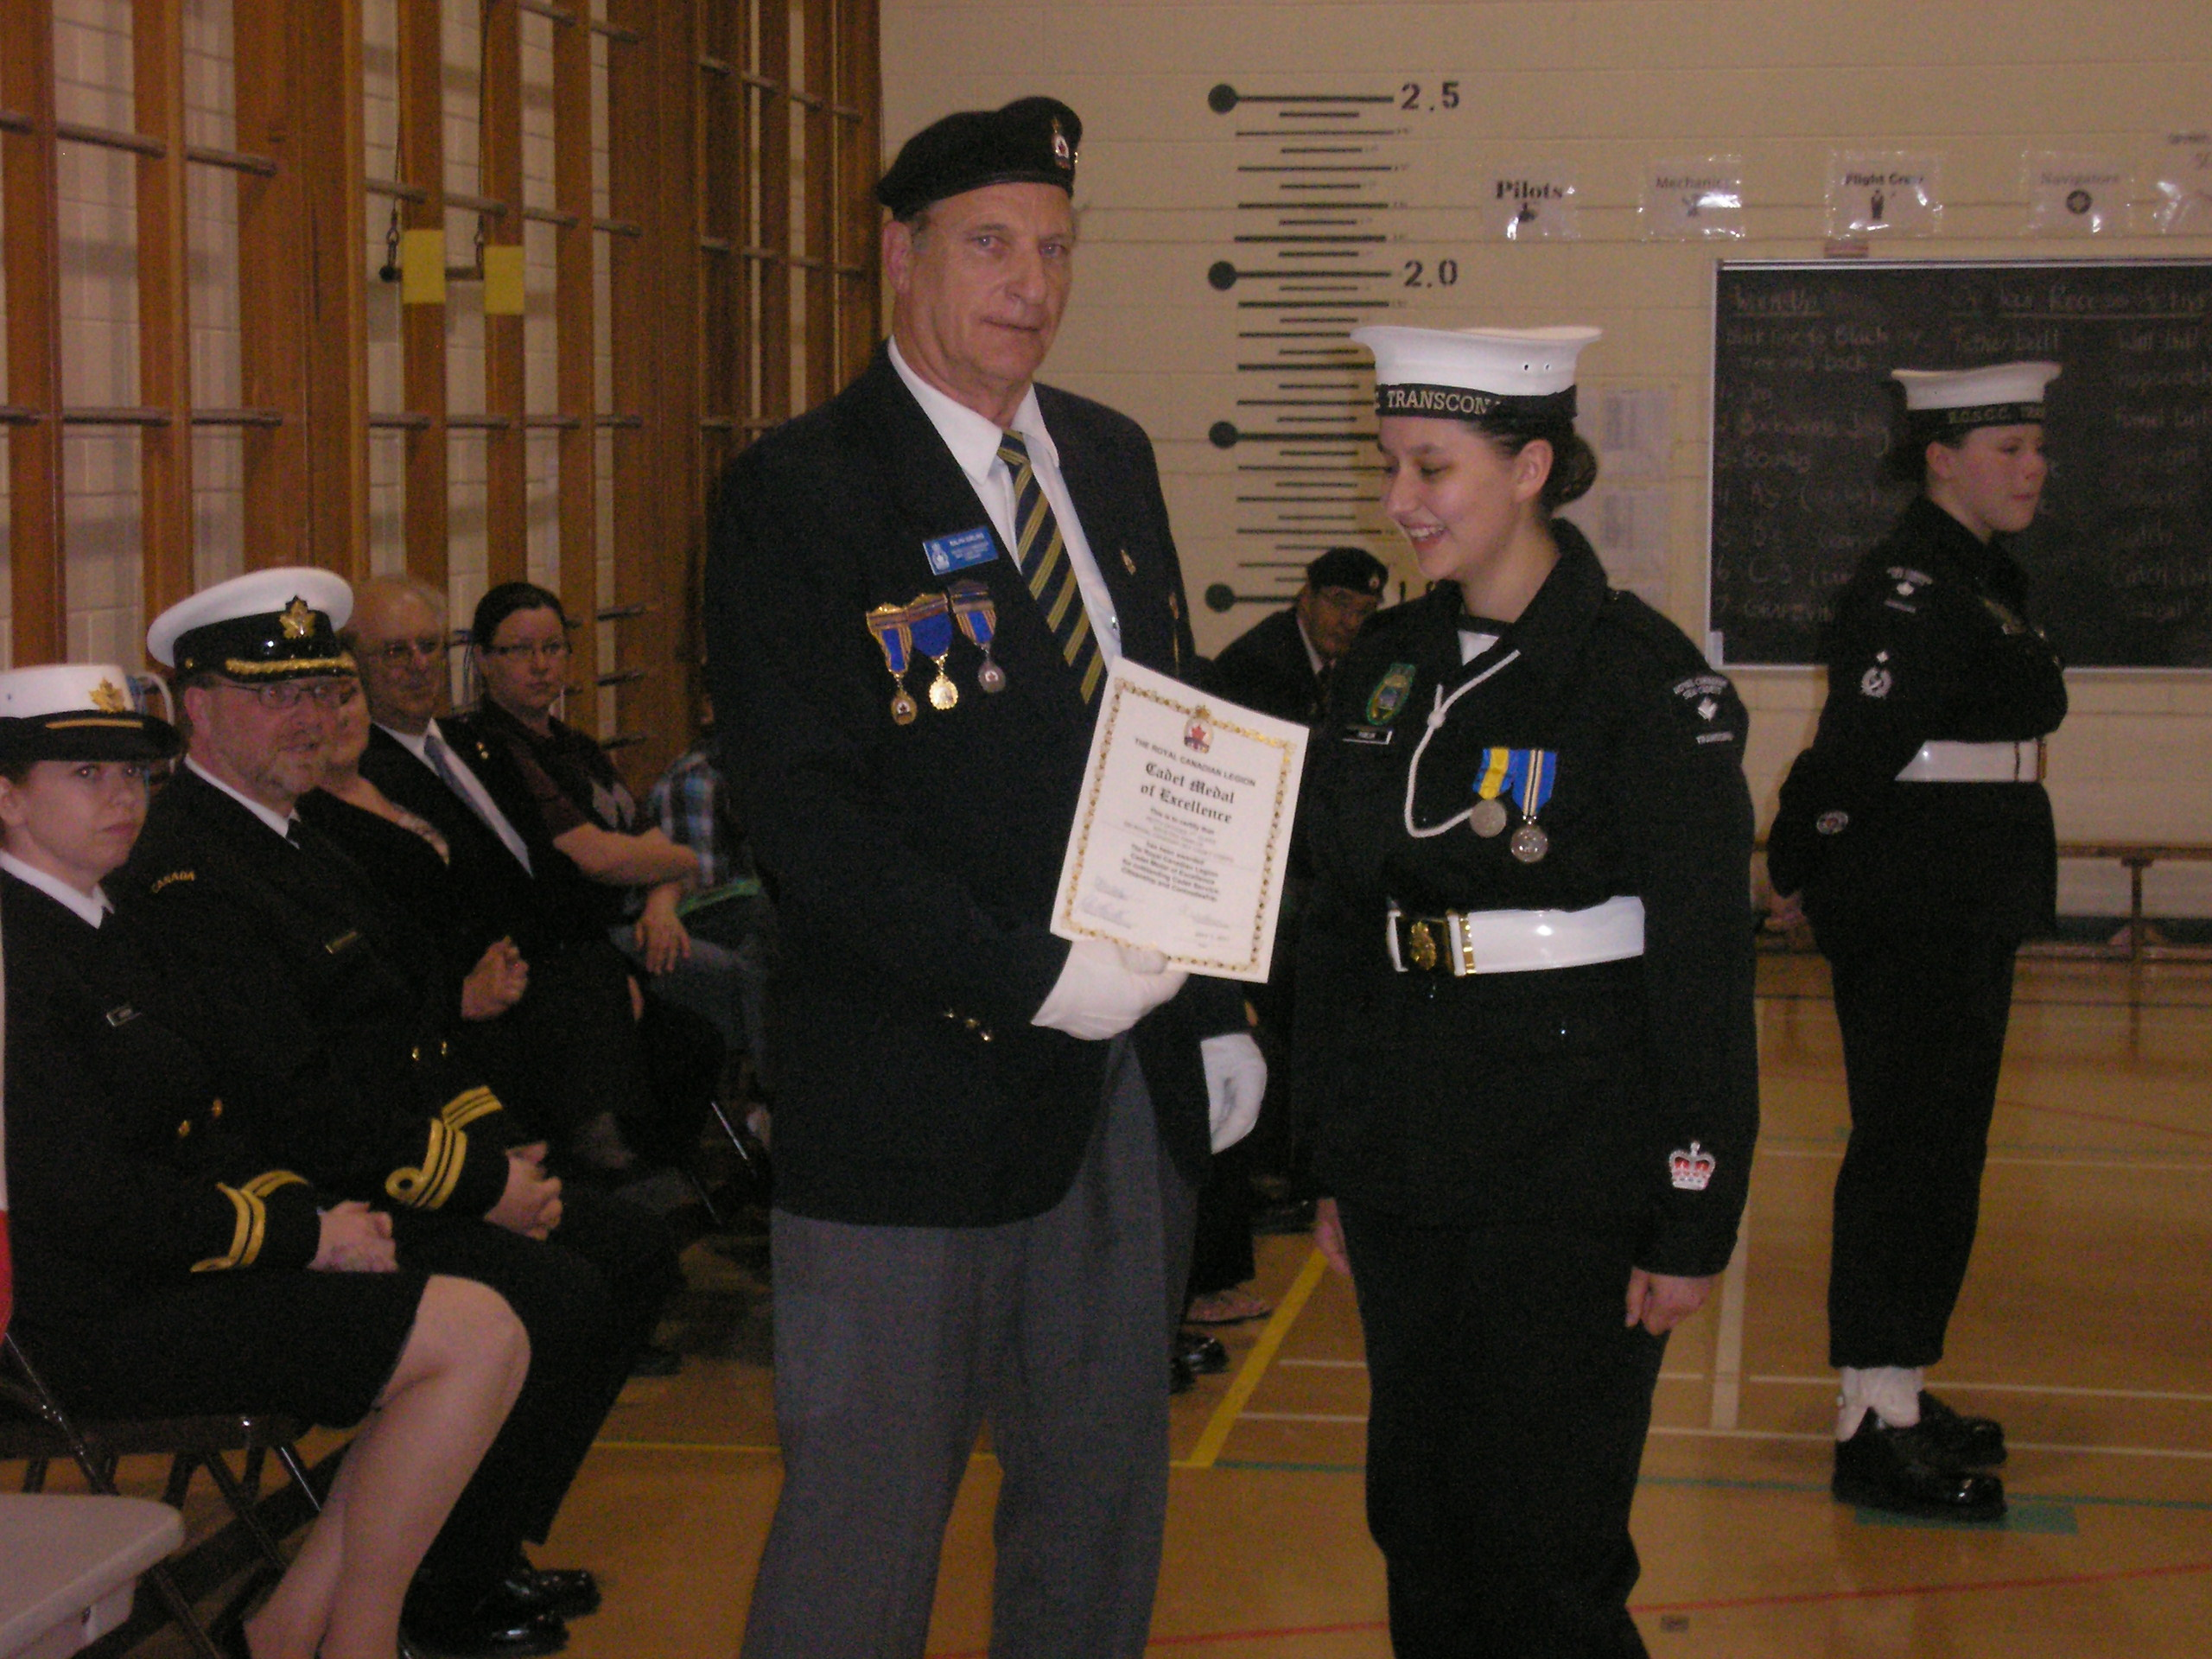 Royal Canadian Legion Poster and Literary Contest Winners 2017